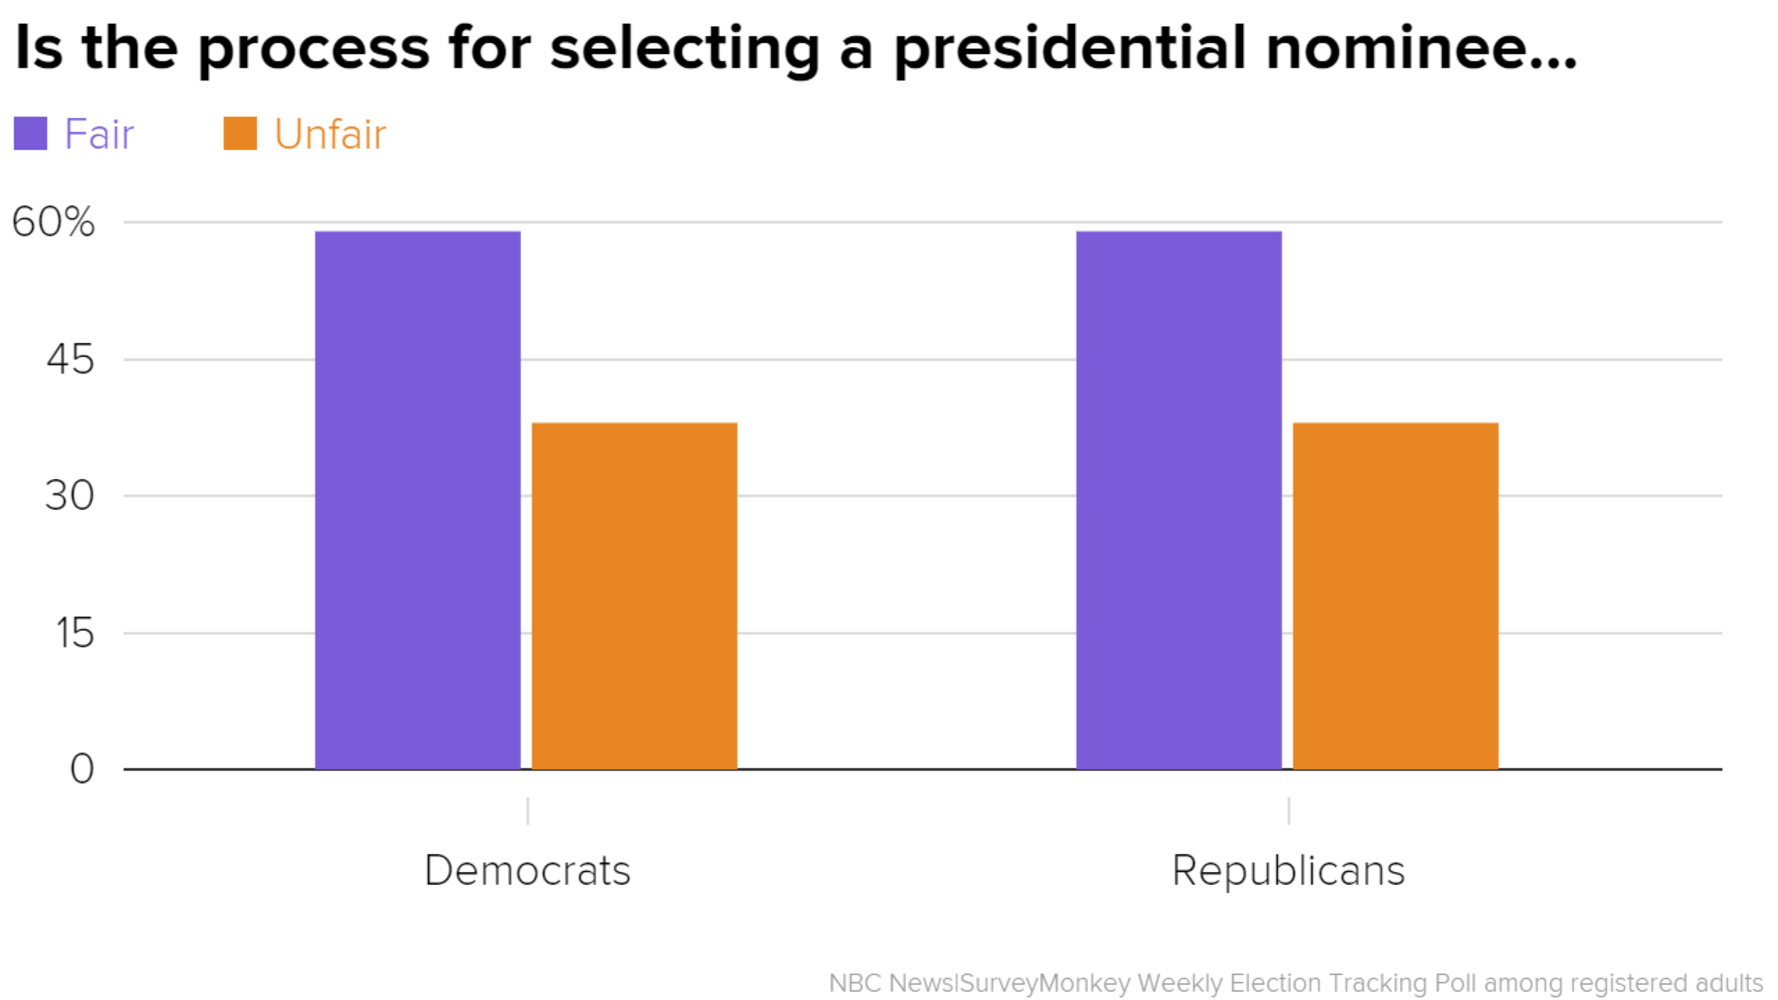 Poll Majority Of Democratic And Republican Voters Think Primary Process Is Fair